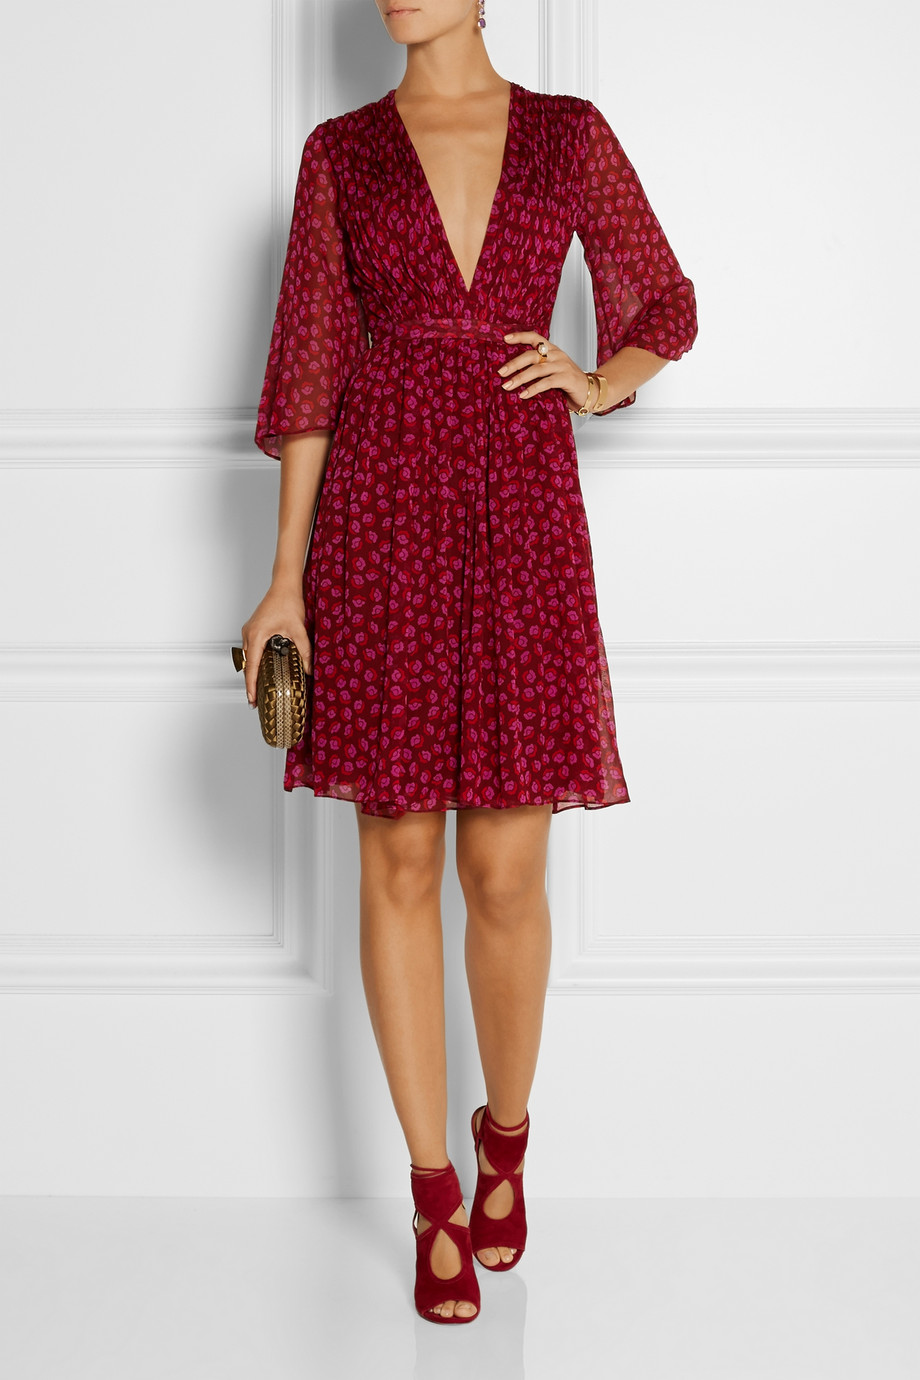 Diane von Furstenberg printed silk-georgette wrap dress | Fancy Friday - Diane von Furstenberg Wrap Dresses | Style and Cheek's Favorite Blog Posts of 2014